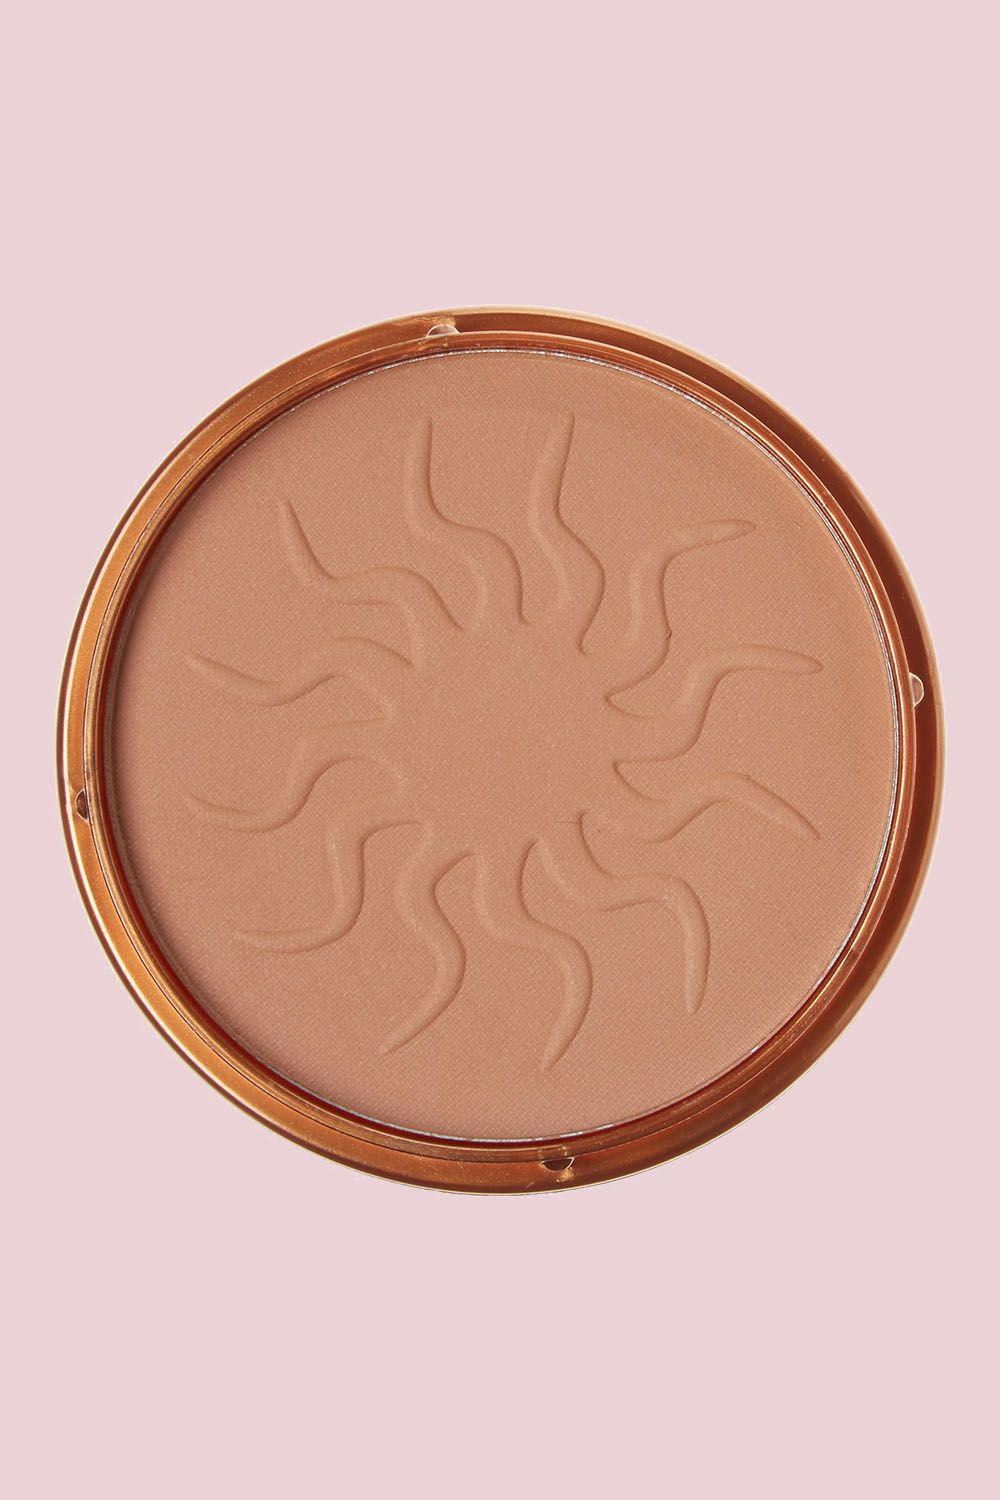 "<p>This richly-pigmented, velvety golden bronzer is a tried-and-true favorite as it's waterproof, easy to apply, and blends like a dream. We can't believe it's still under $5 after all these years.</p><p>Rimmel London Natural Bronzer<span class=""redactor-invisible-space"" data-verified=""redactor"" data-redactor-tag=""span"" data-redactor-class=""redactor-invisible-space"">, $4.99; <a href=""http://bit.ly/2mk6HxK"" target=""_blank"" data-tracking-id=""recirc-text-link"">ulta.com.</a></span><br></p>"